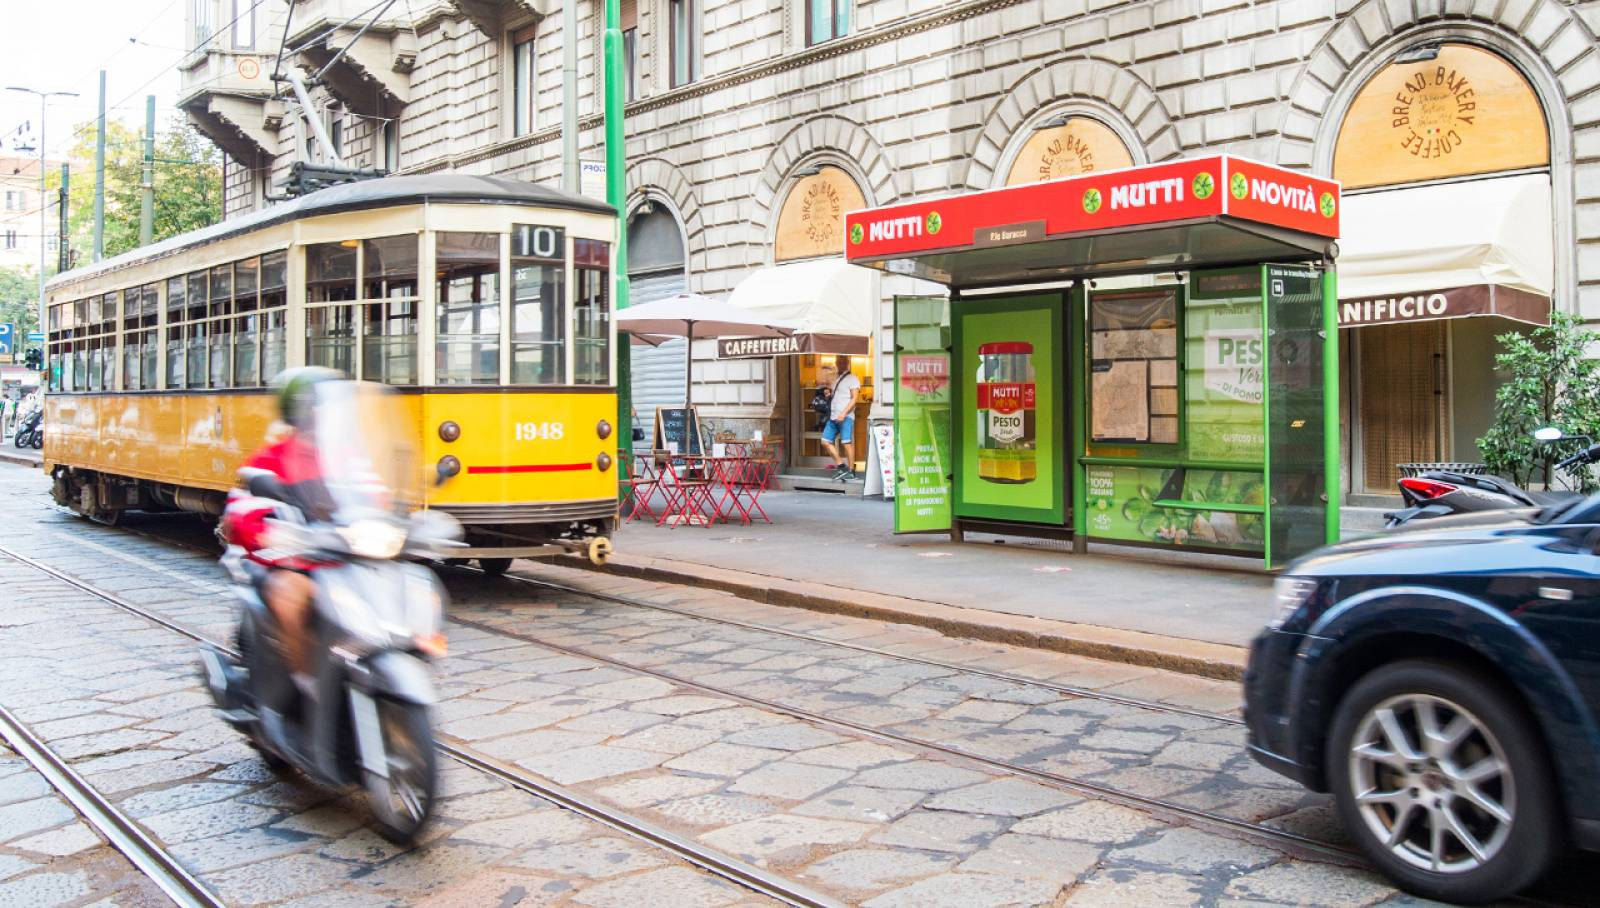 IGPDecaux OOH advertising in Milan Brand Shelters for Mutti